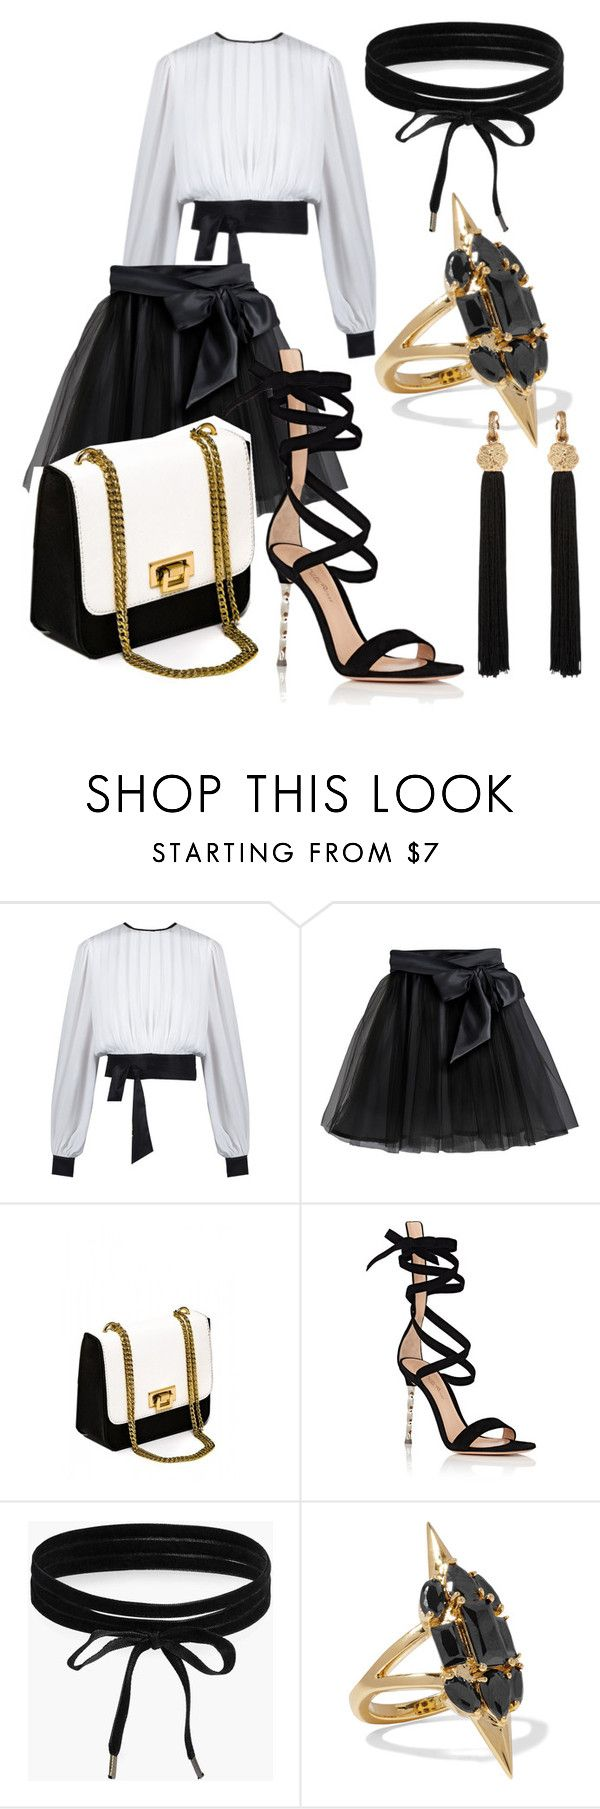 """""""Lucia"""" by the-mad-hattess on Polyvore featuring Little Wardrobe London, Gianvito Rossi, Boohoo, Noir Jewelry and Yves Saint Laurent"""